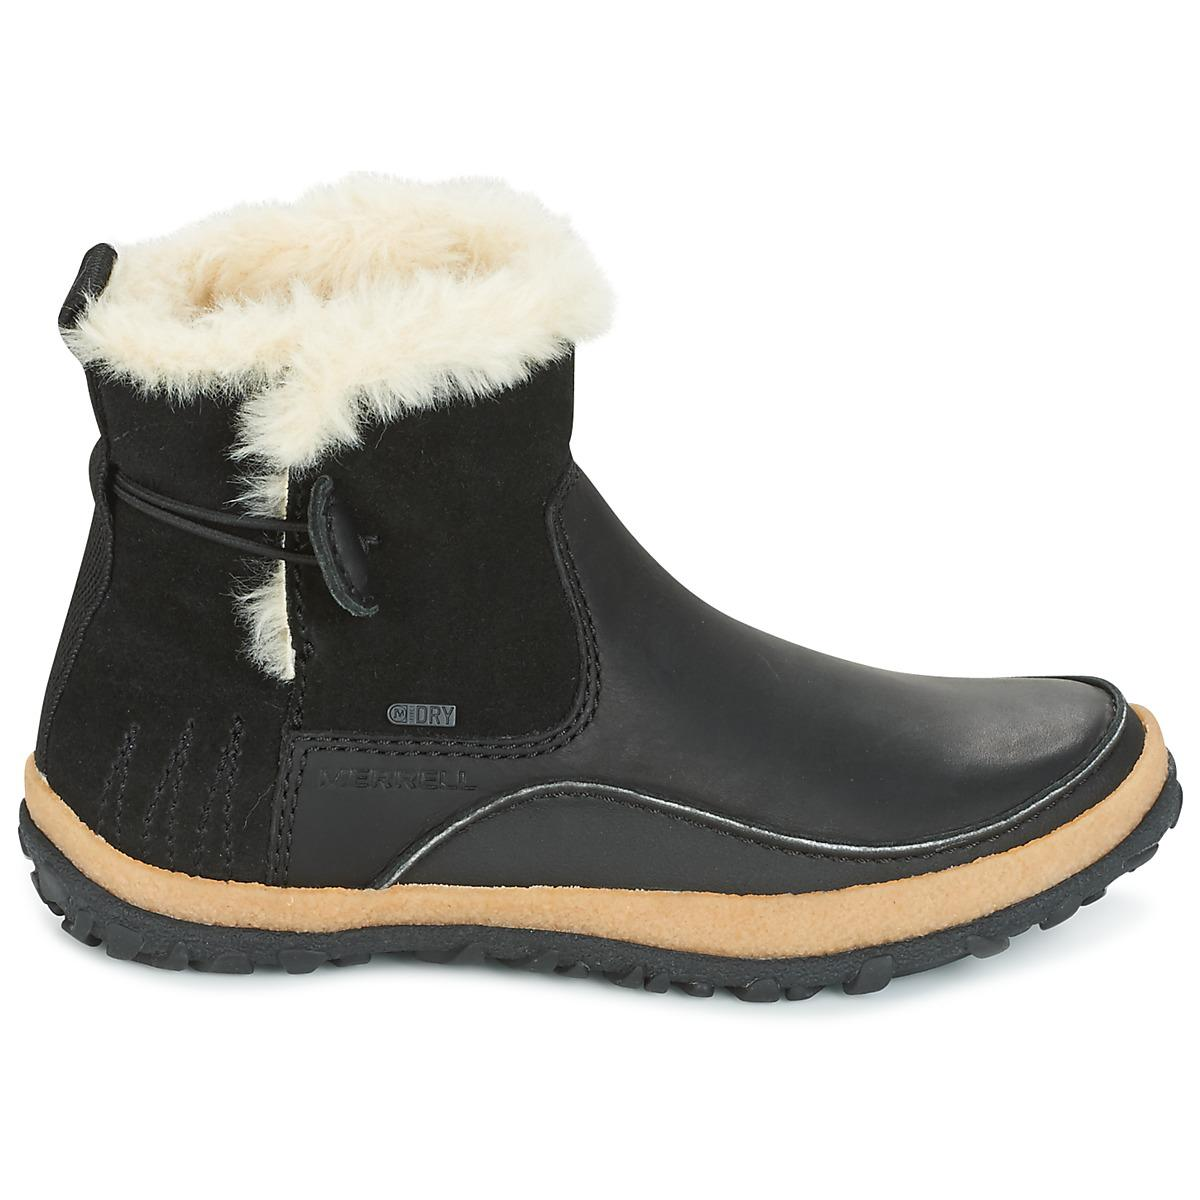 Merrell TREMBLANT PULL ON THRMO WP women's Snow boots in Cheap Huge Surprise Sale Hot Sale Cheap Sale Low Shipping For Sale Online 2CQOe